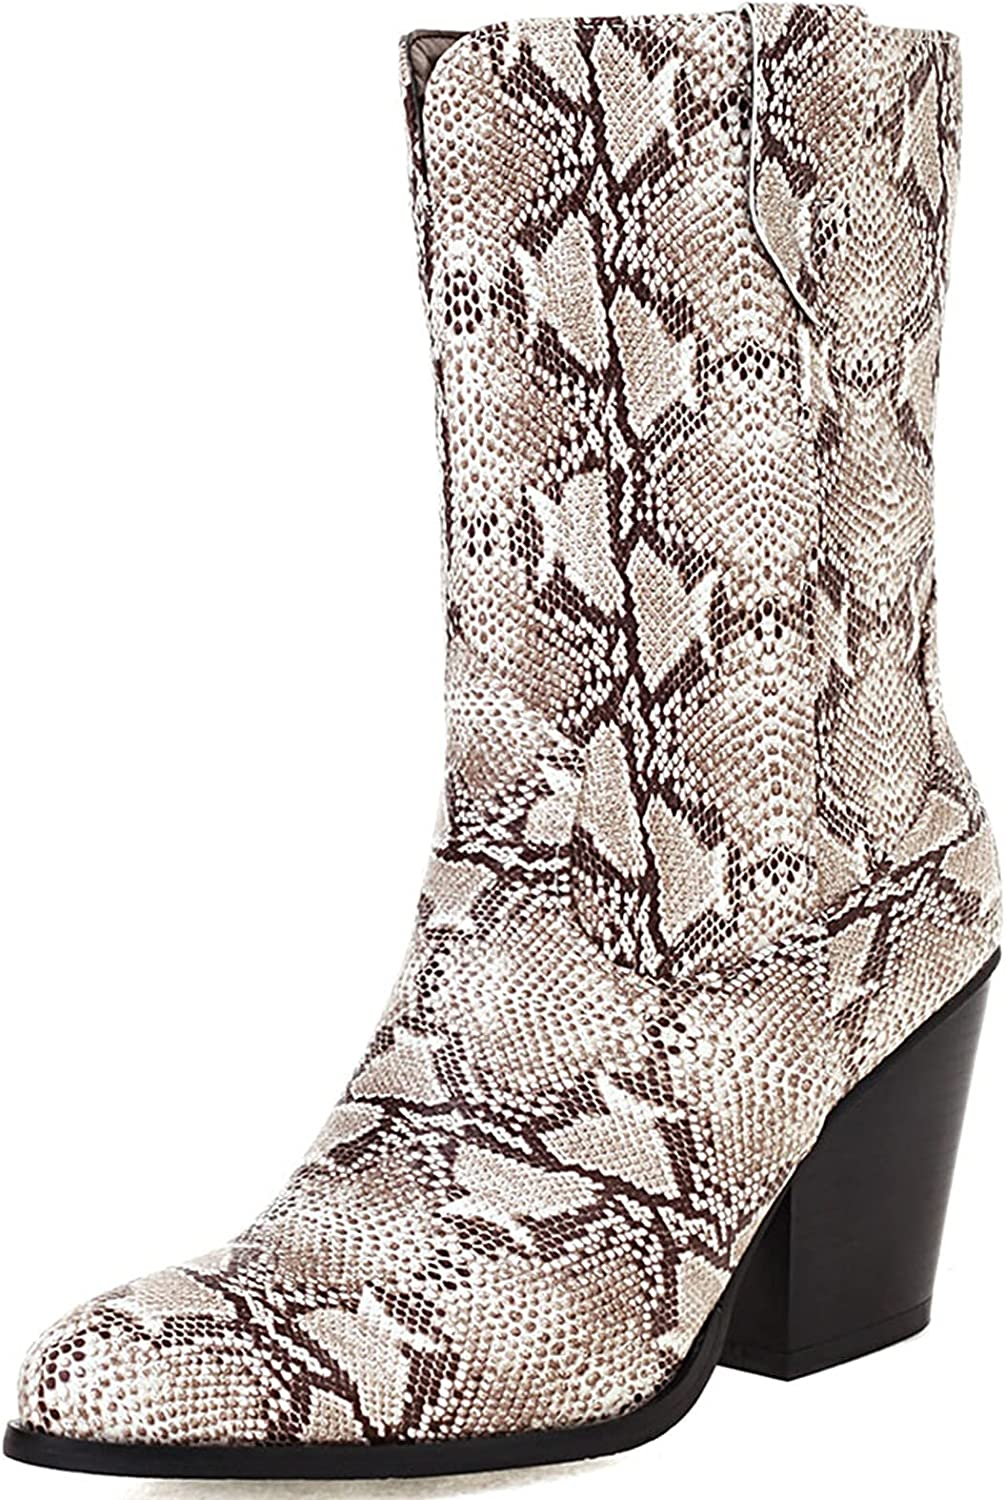 SaraIris Women's Cowboy Boots Pointed Toe Colorful Glitter Pull-on Mid Calf Boots Chunky Block Heel Cowgirl Boots Western Boots